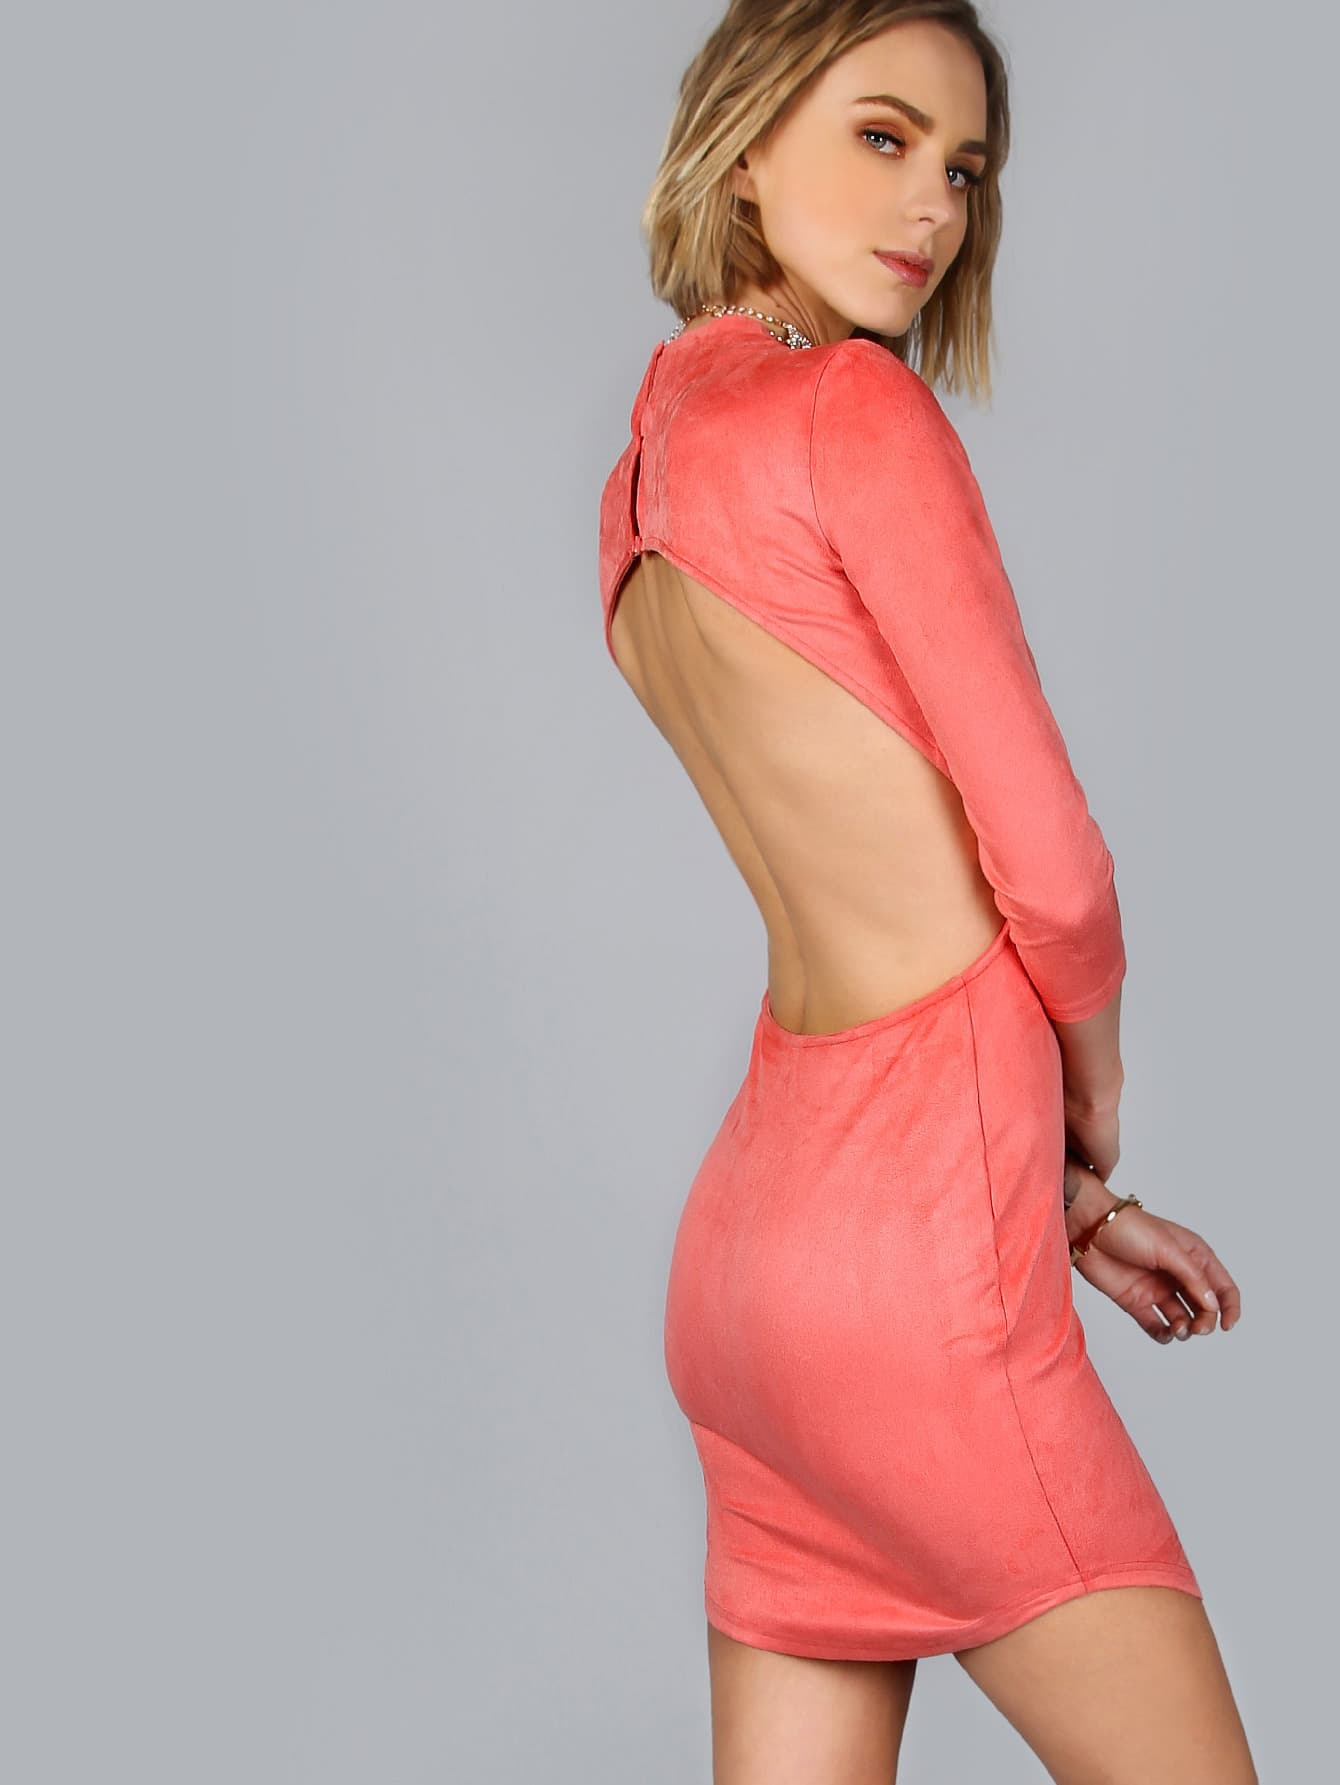 Backless Suede  3/4 Sleeve  Bodycon DressBackless Suede  3/4 Sleeve  Bodycon Dress<br><br>color: Pink<br>size: L,M,S,XS